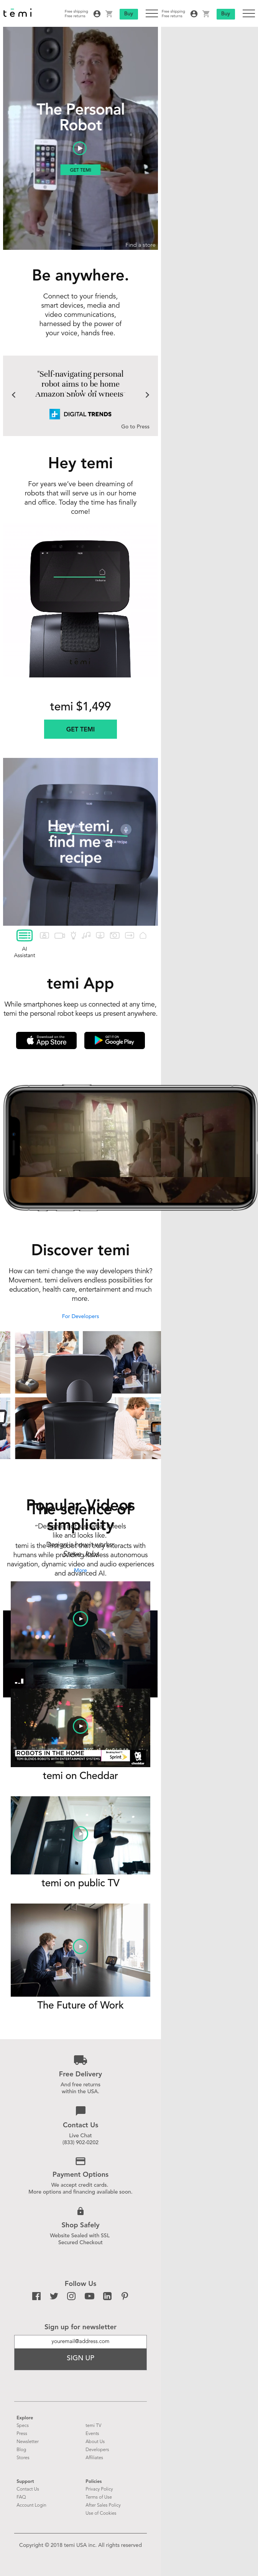 Example of Design for Uncategorized, Mobile Landing Page by robotemi.com   Mobile Landing Page Design